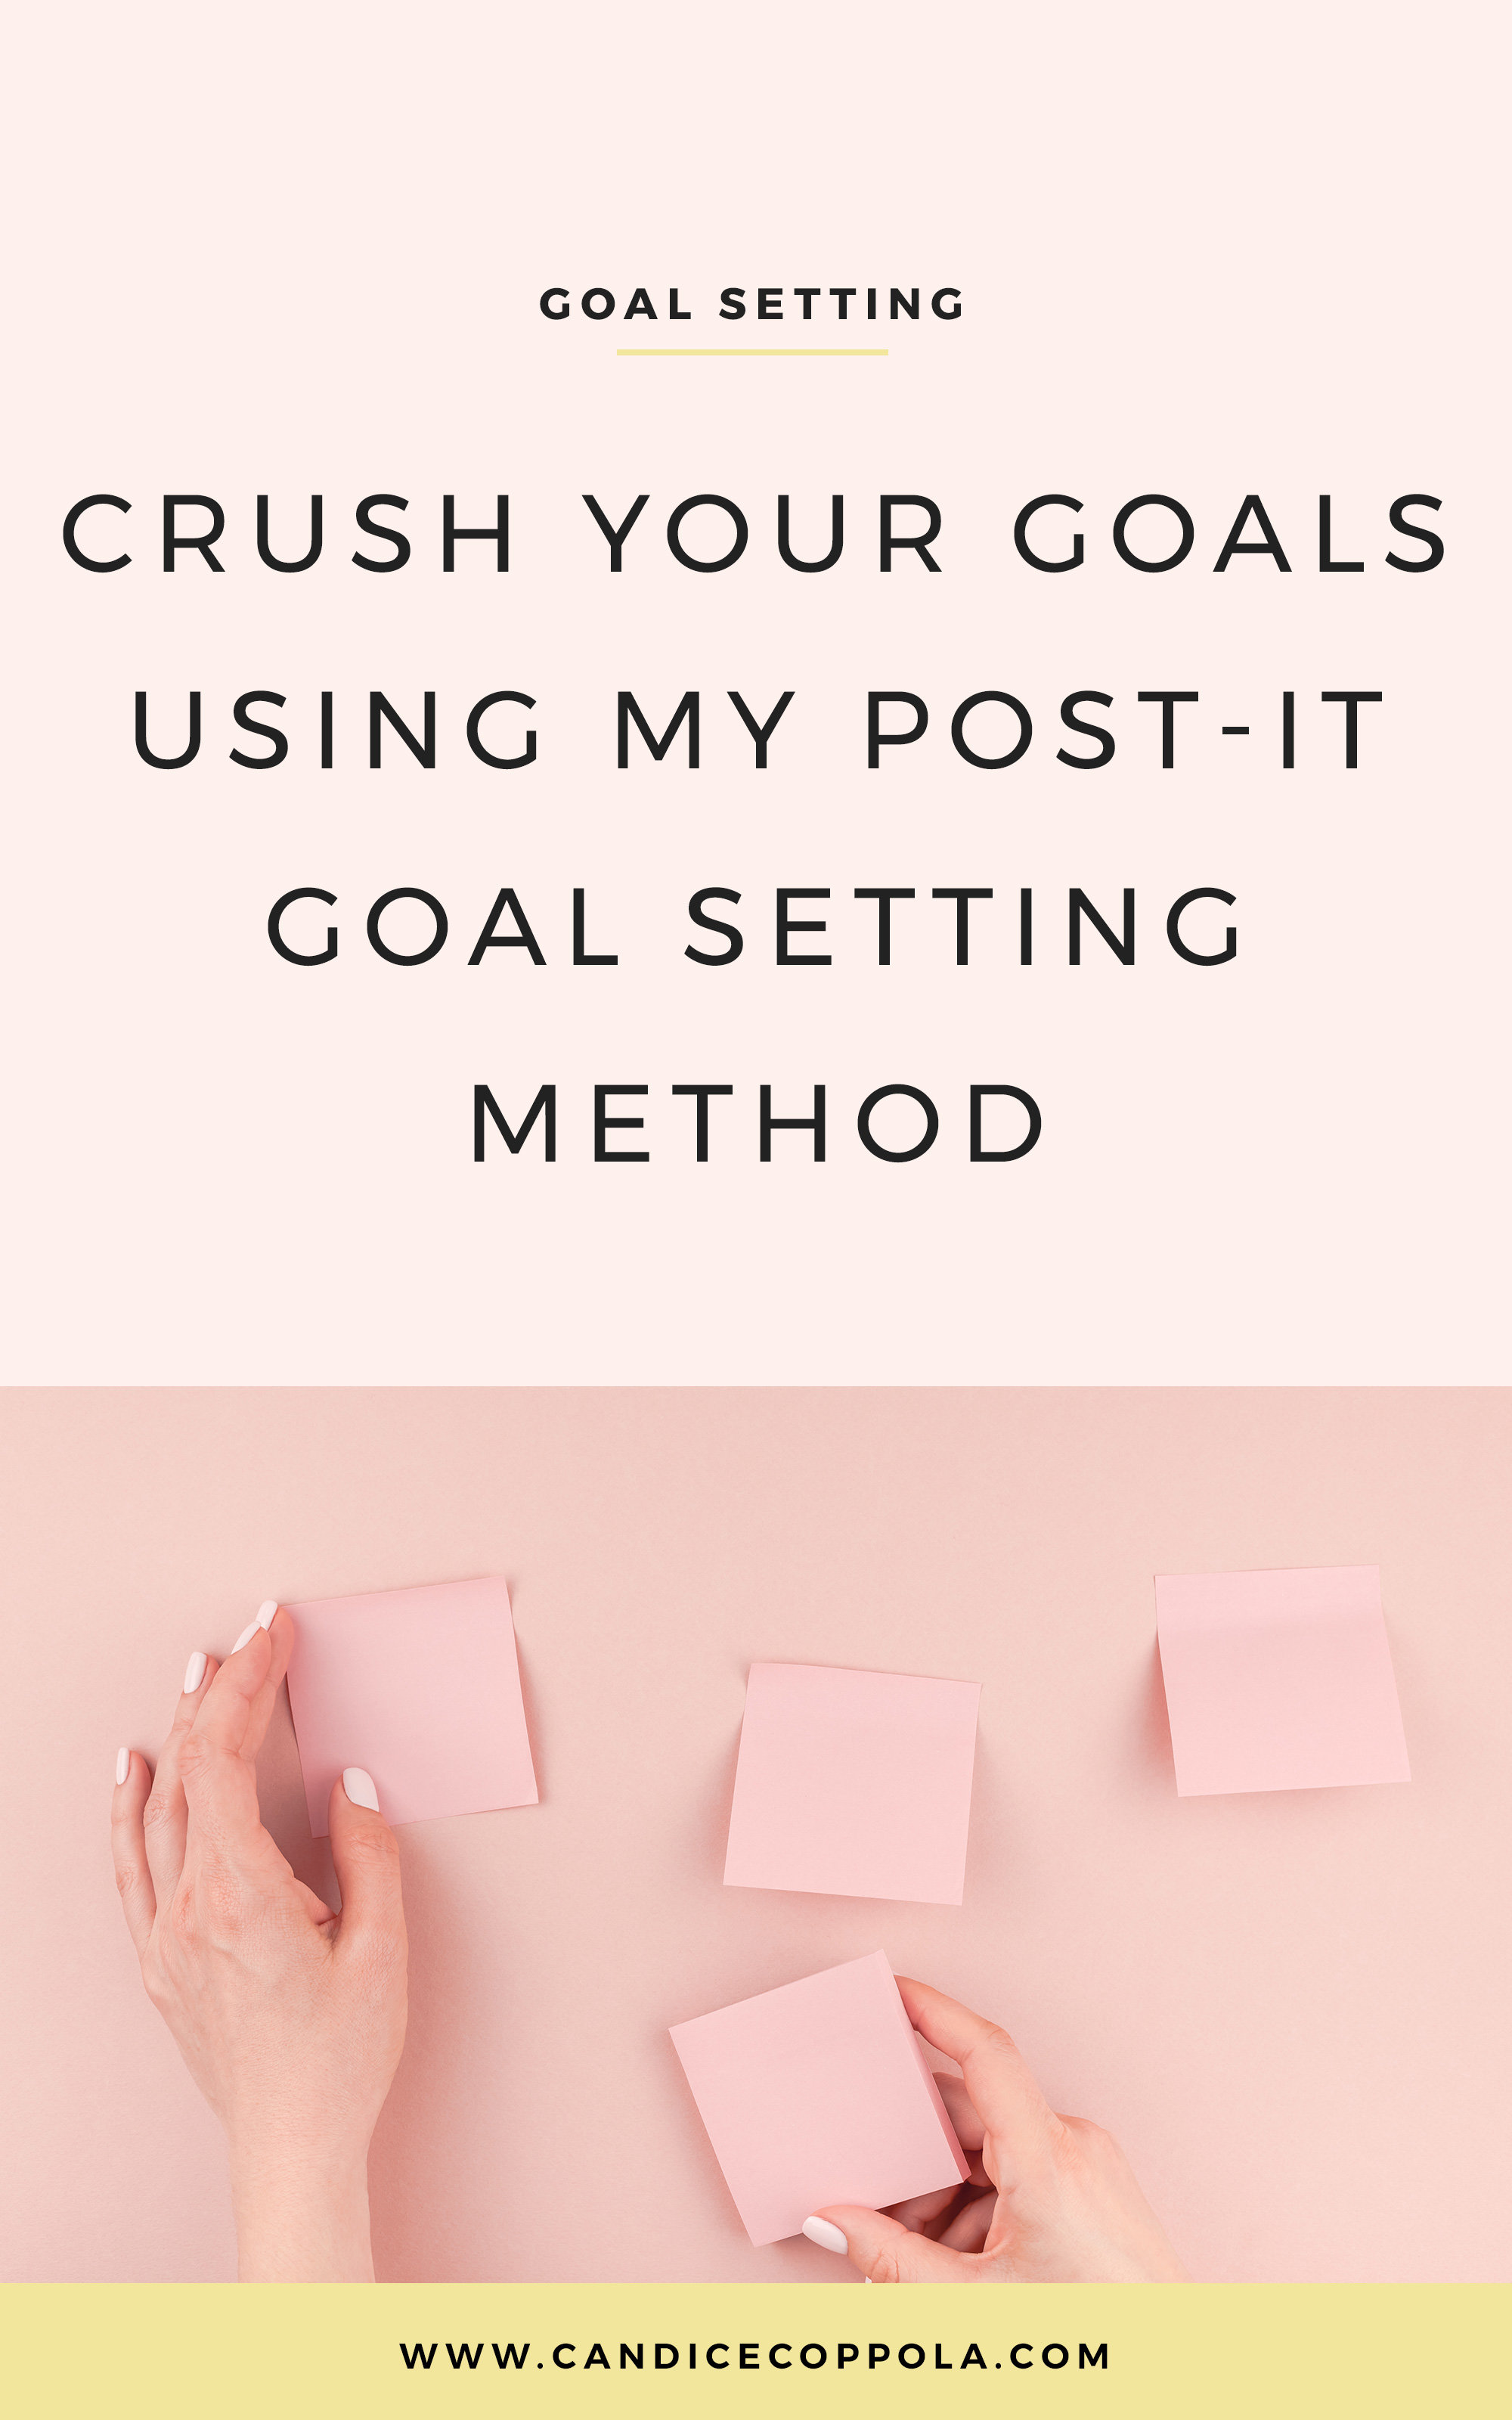 Learn my post-it goal setting method, including 2 free podcast episodes + workbook.